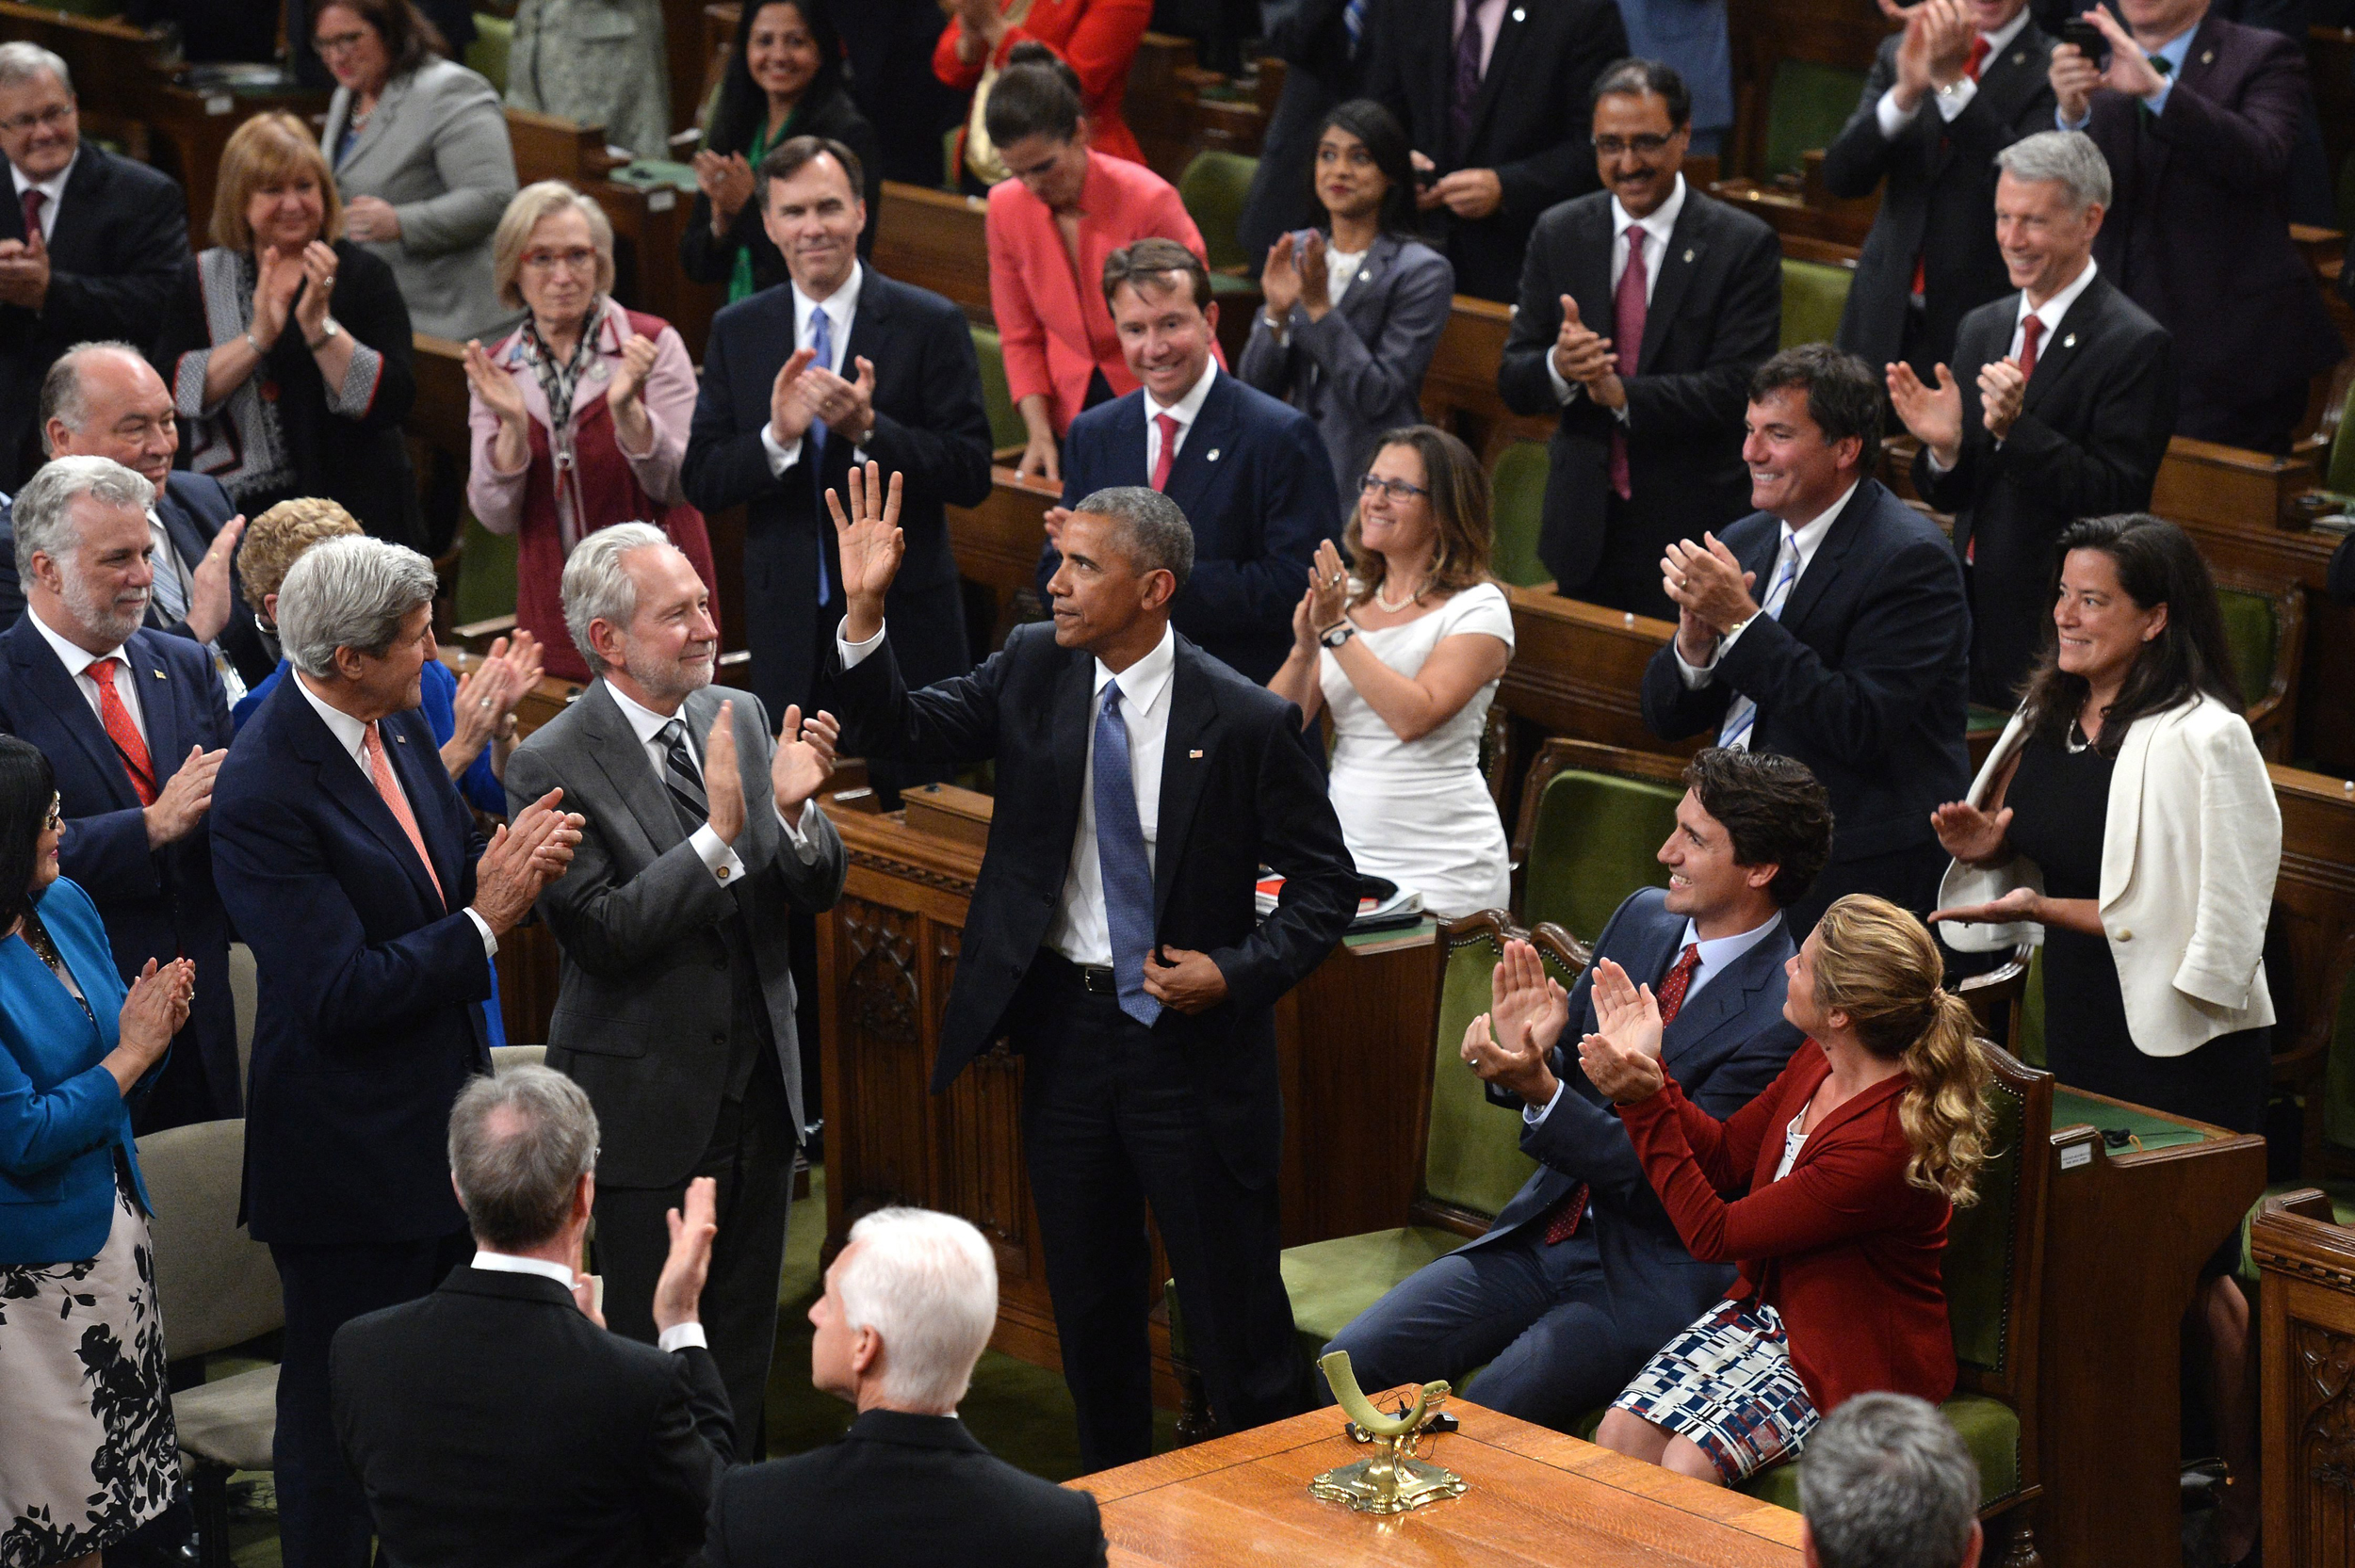 Obama Given Rapturous Welcome in Canada's House of Commons